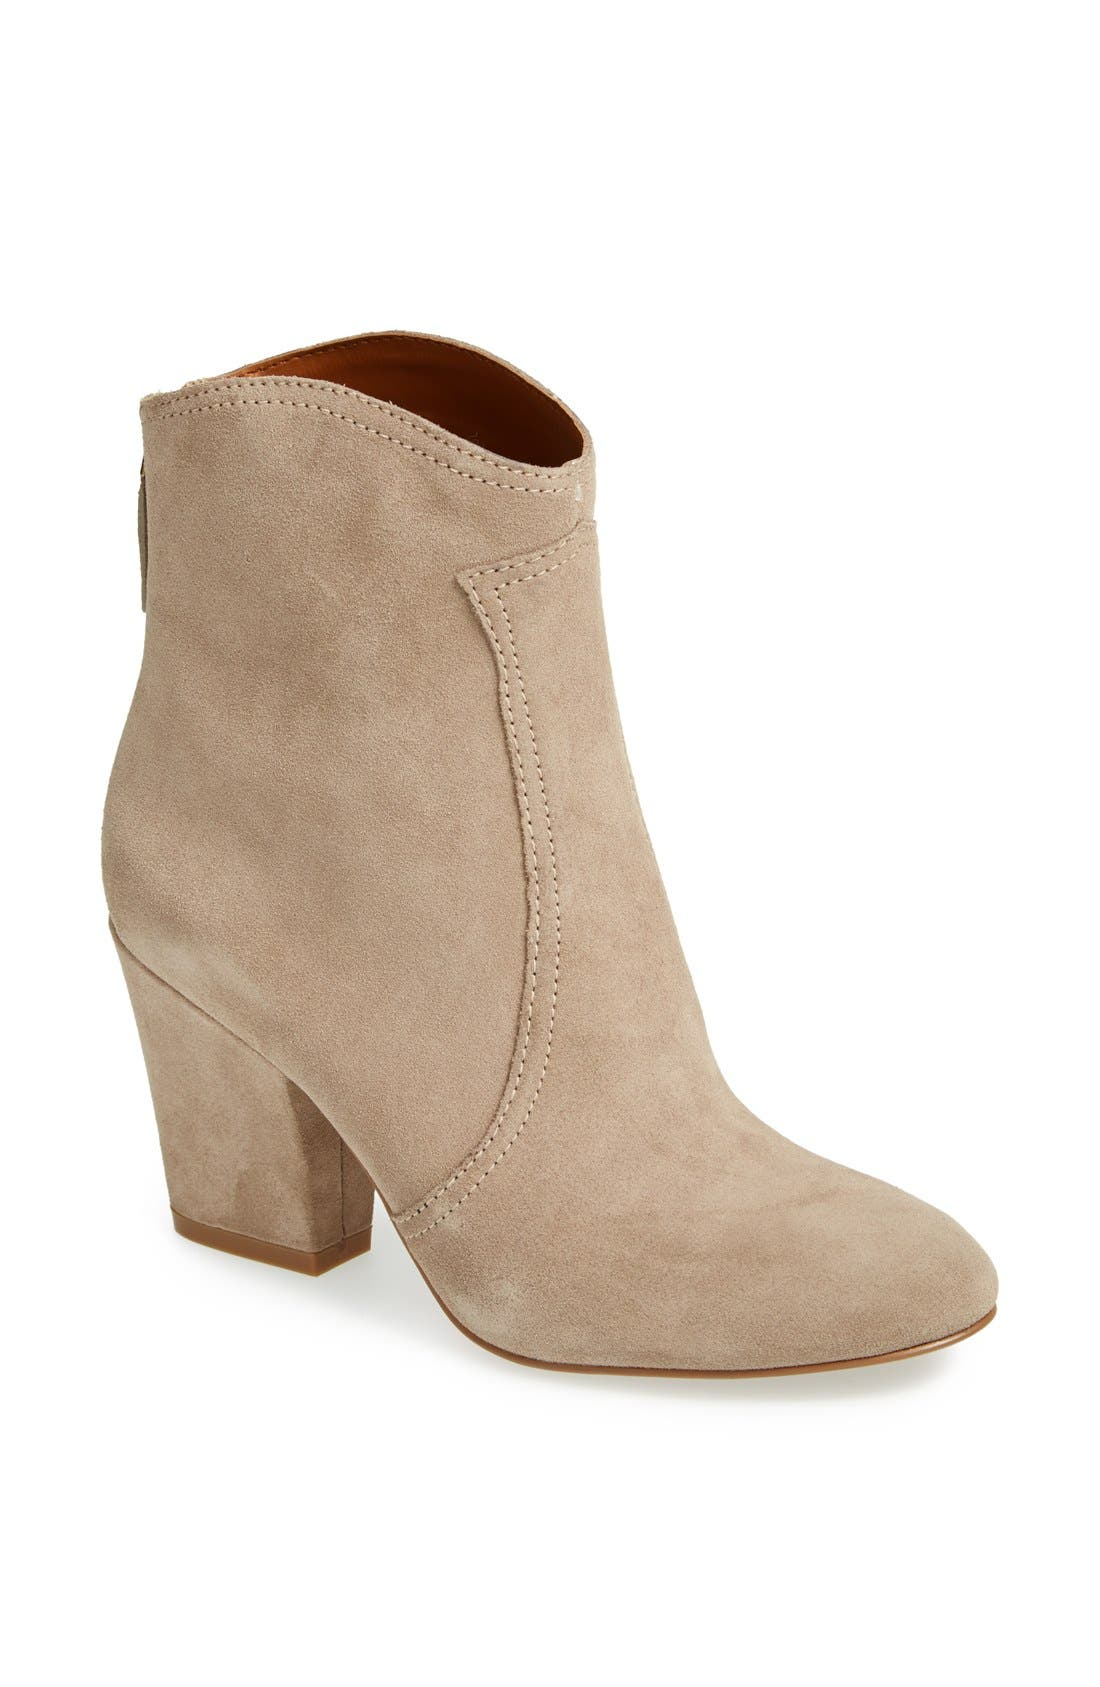 Alternate Image 1 Selected - Nine West 'Dashiell' Leather Boot